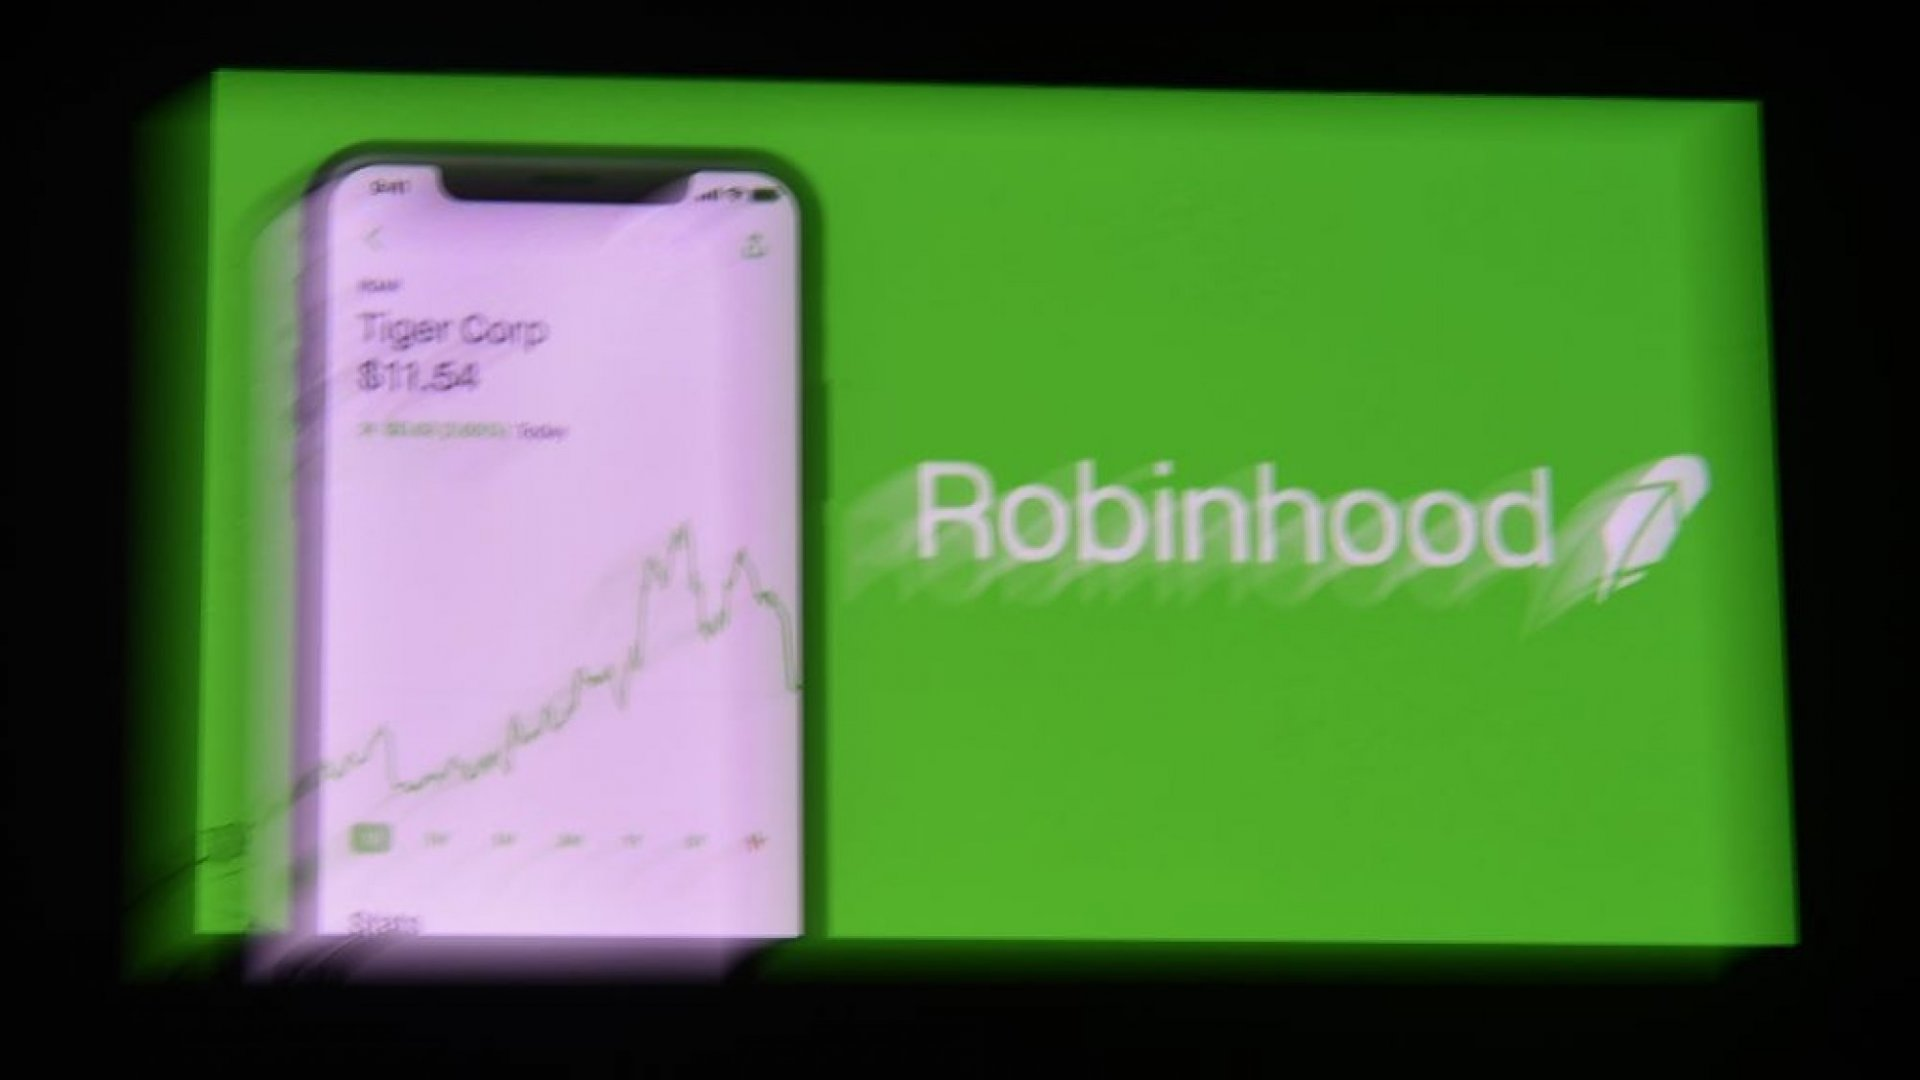 Robinhood Destroyed Its Brand in Less Than a Day